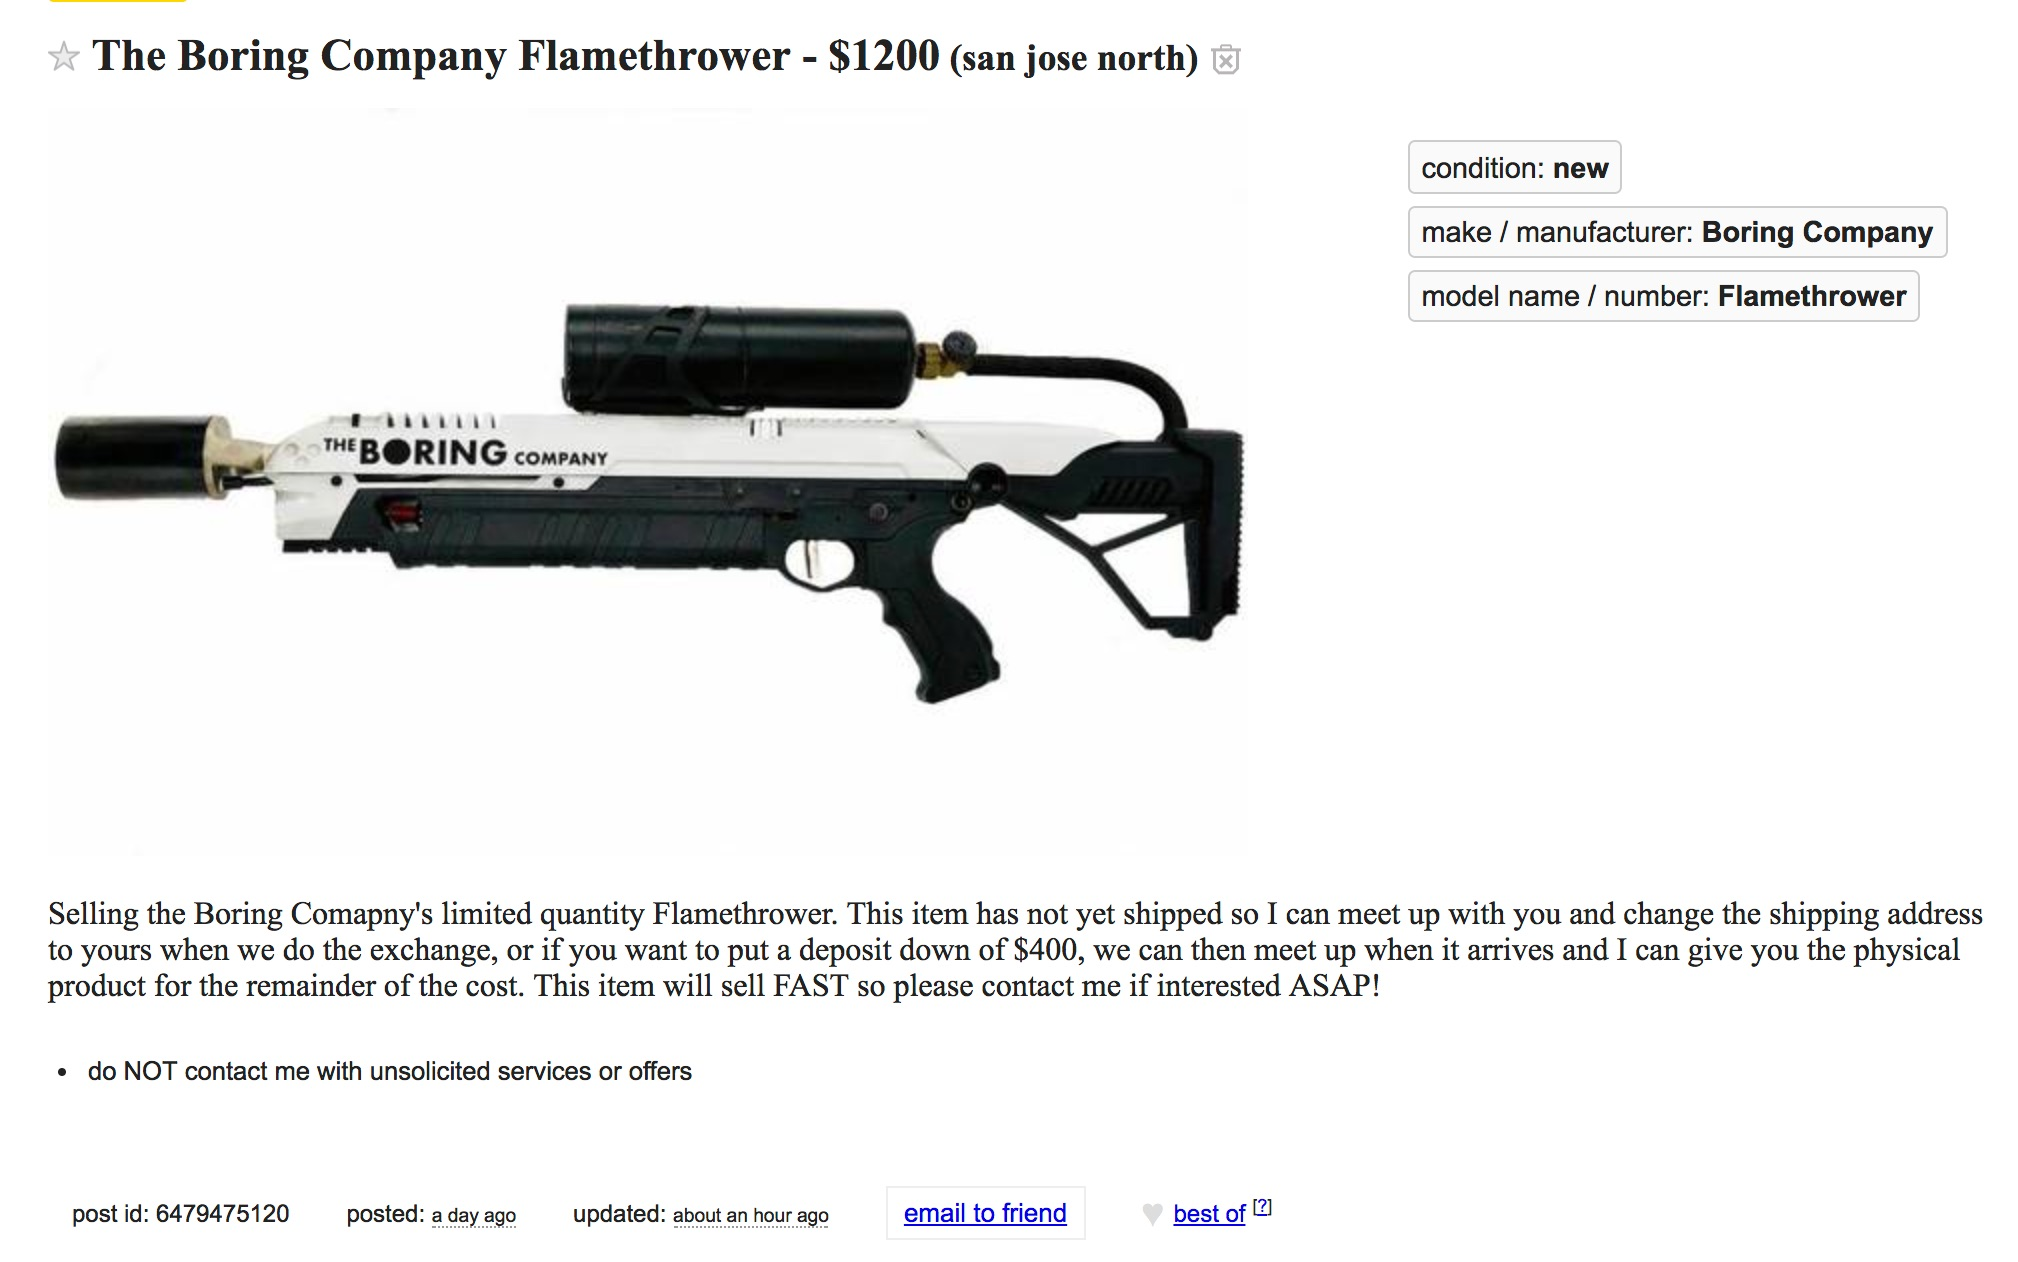 craigslist-boring-company-flamethrower-for-sale